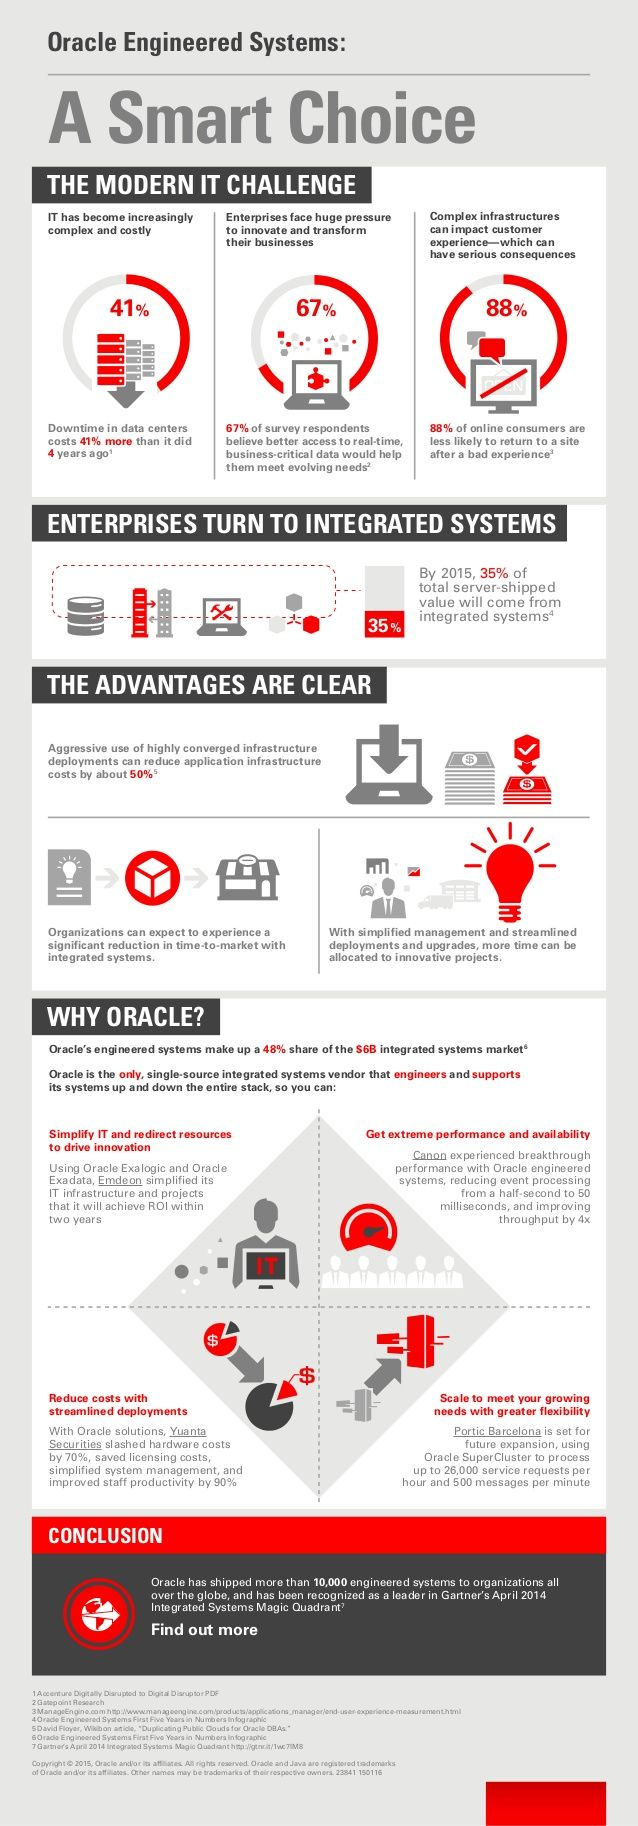 Oracle Engineered Systems: A Smart Choice